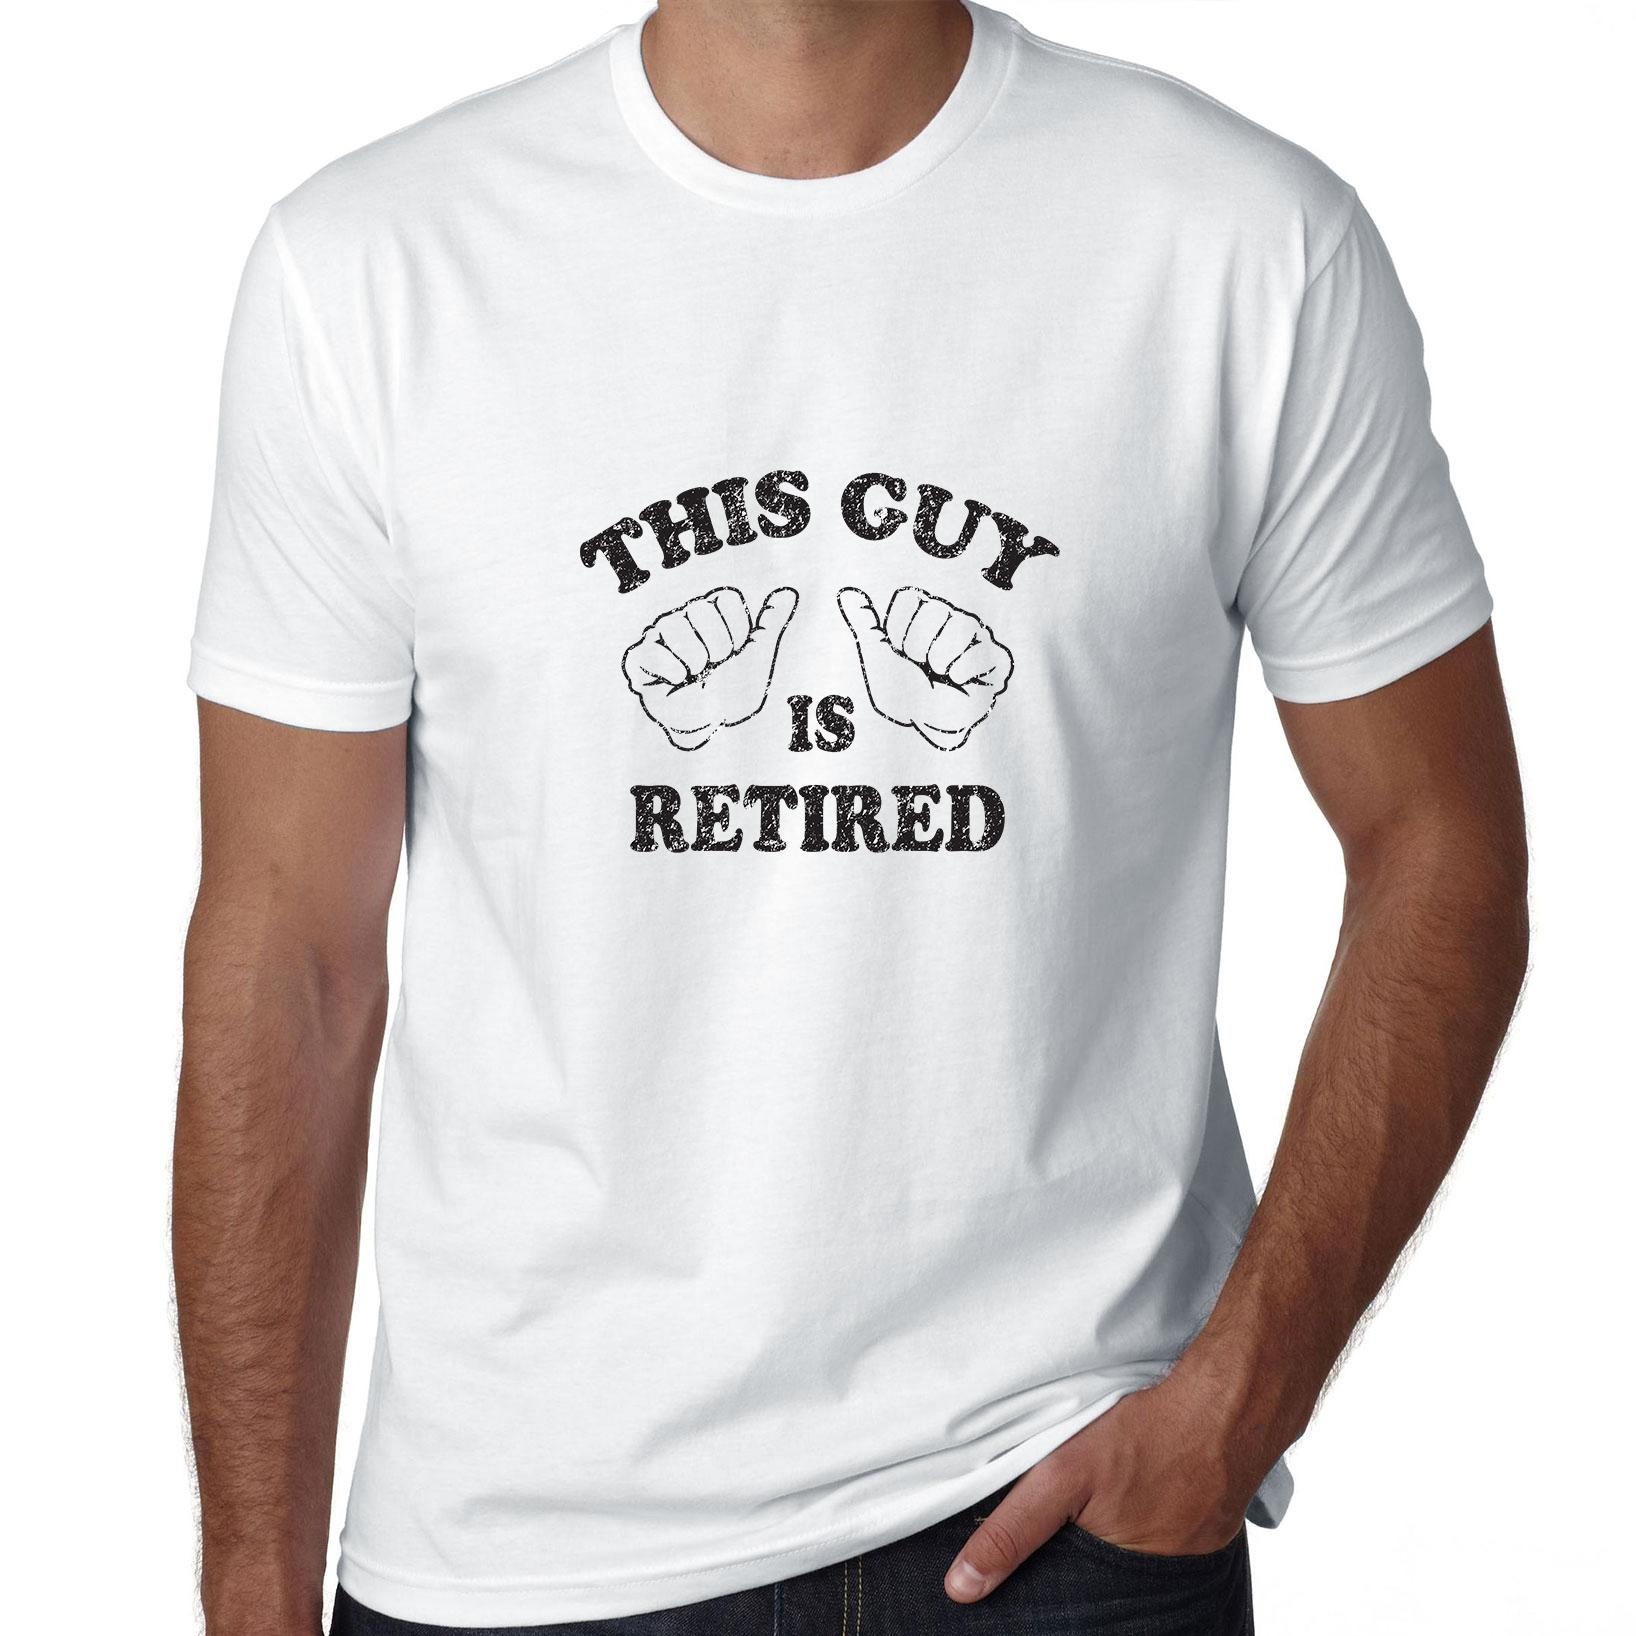 This Guy Is Retired - Classic Retirement Graphic Men's T-Shirt